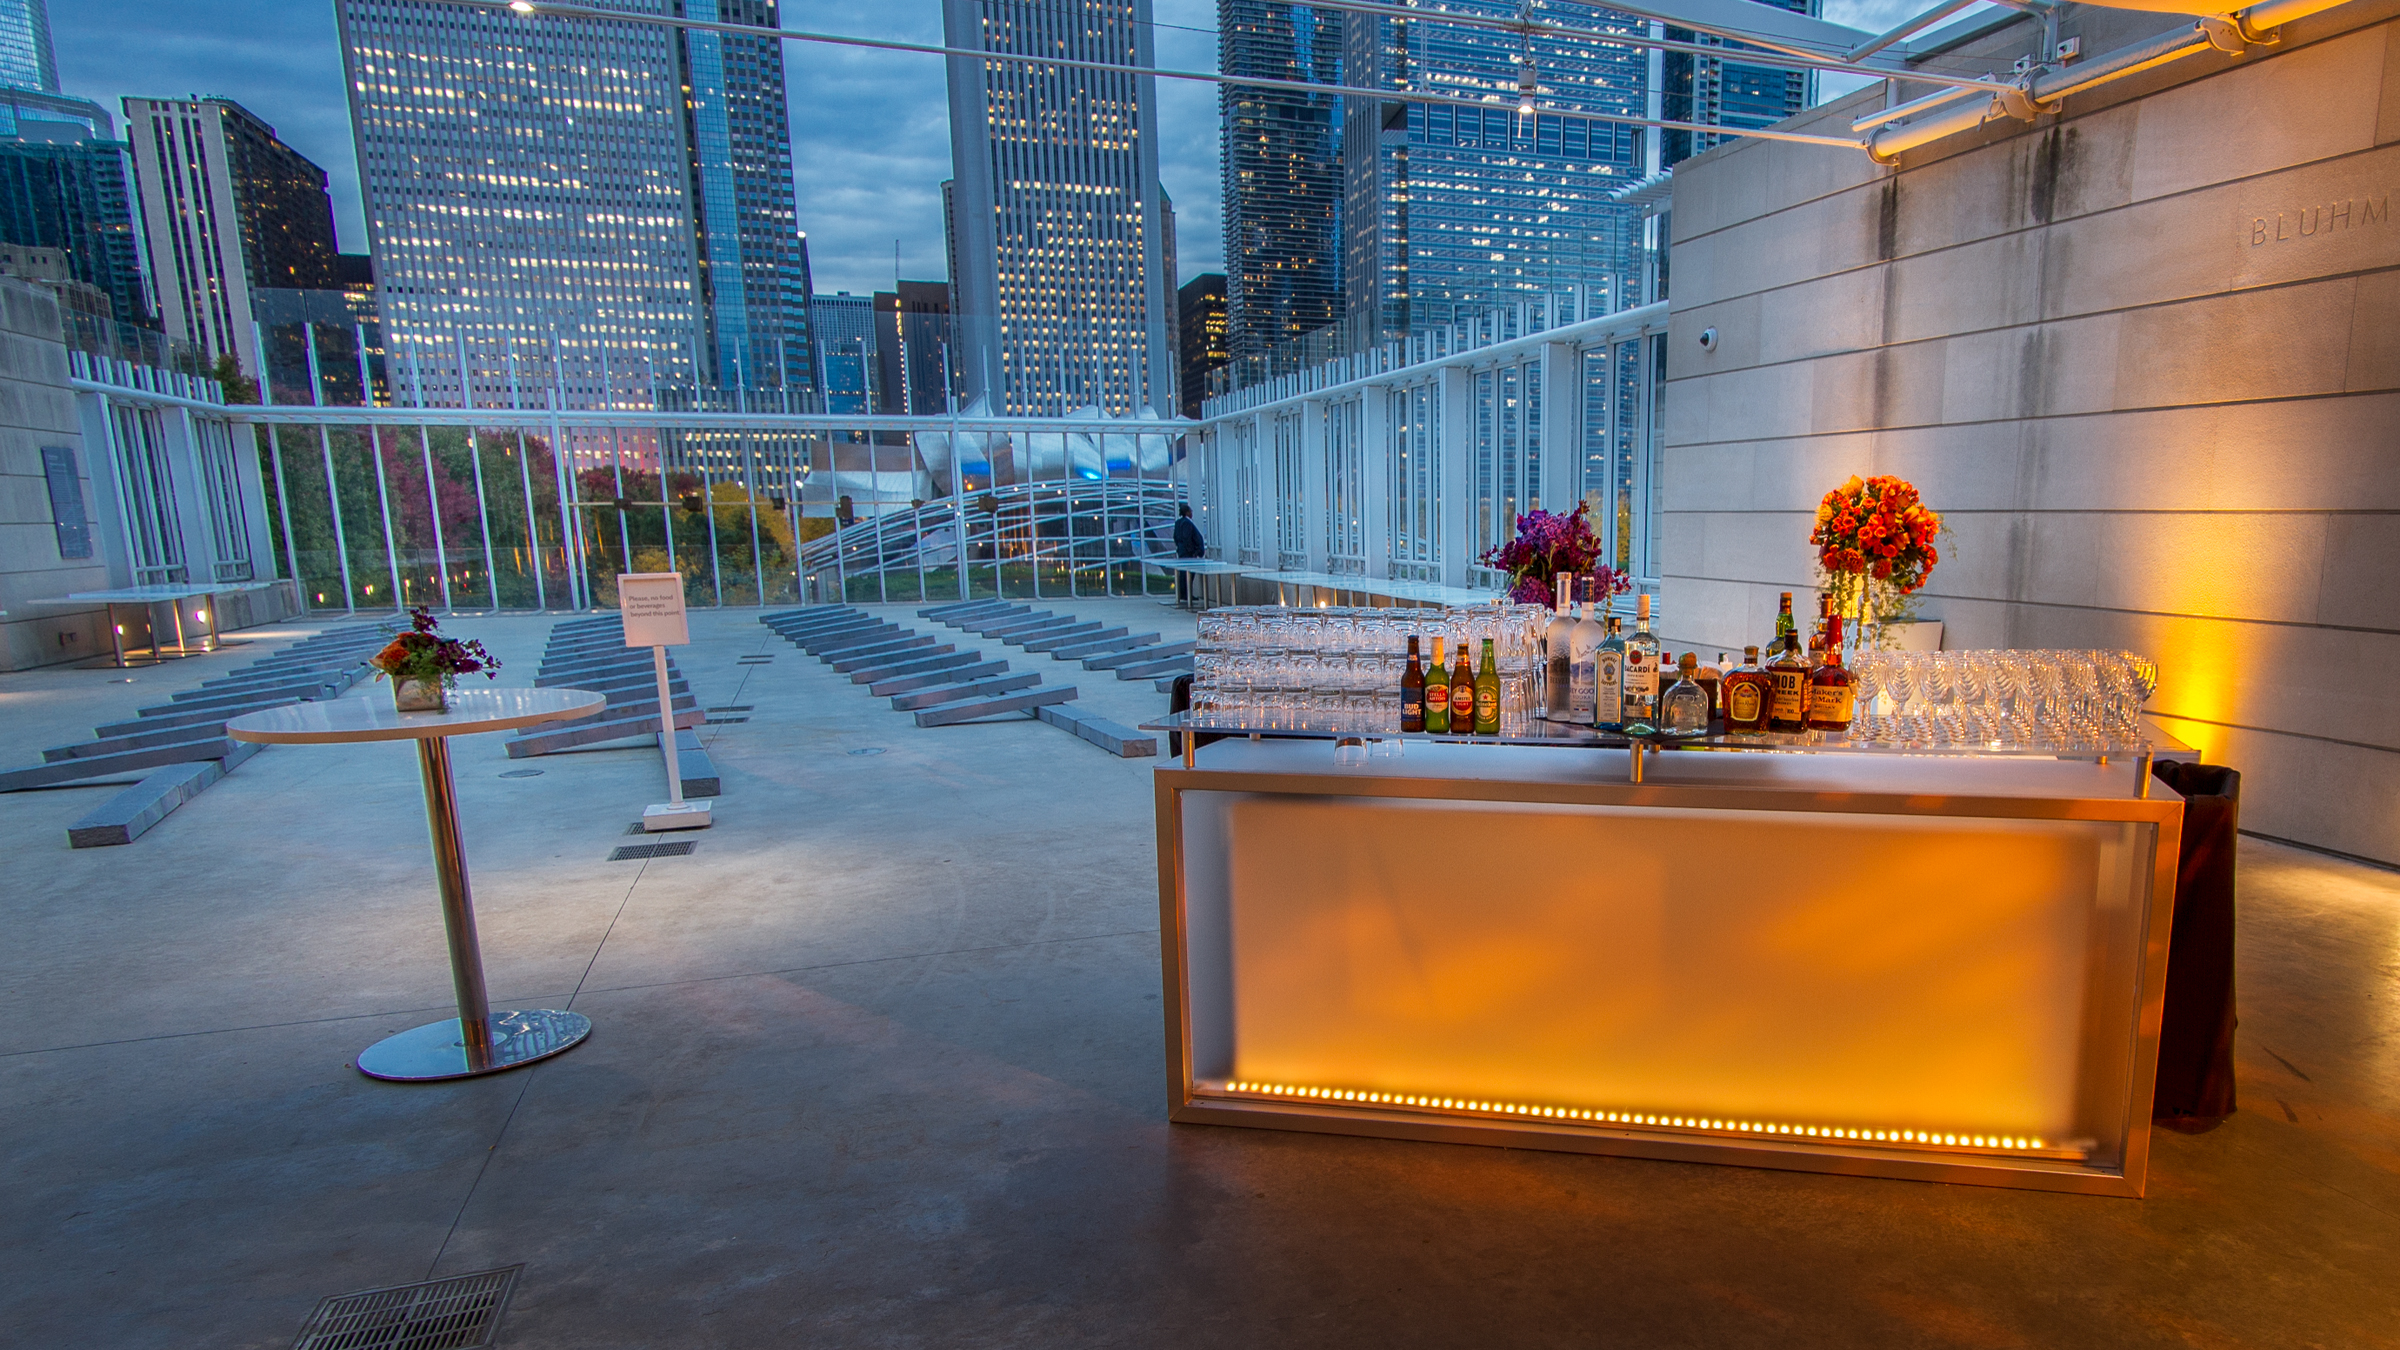 CORPORATE PARTY AT THE ART INSTITUTE OF CHICAGO - Kehoe Designs